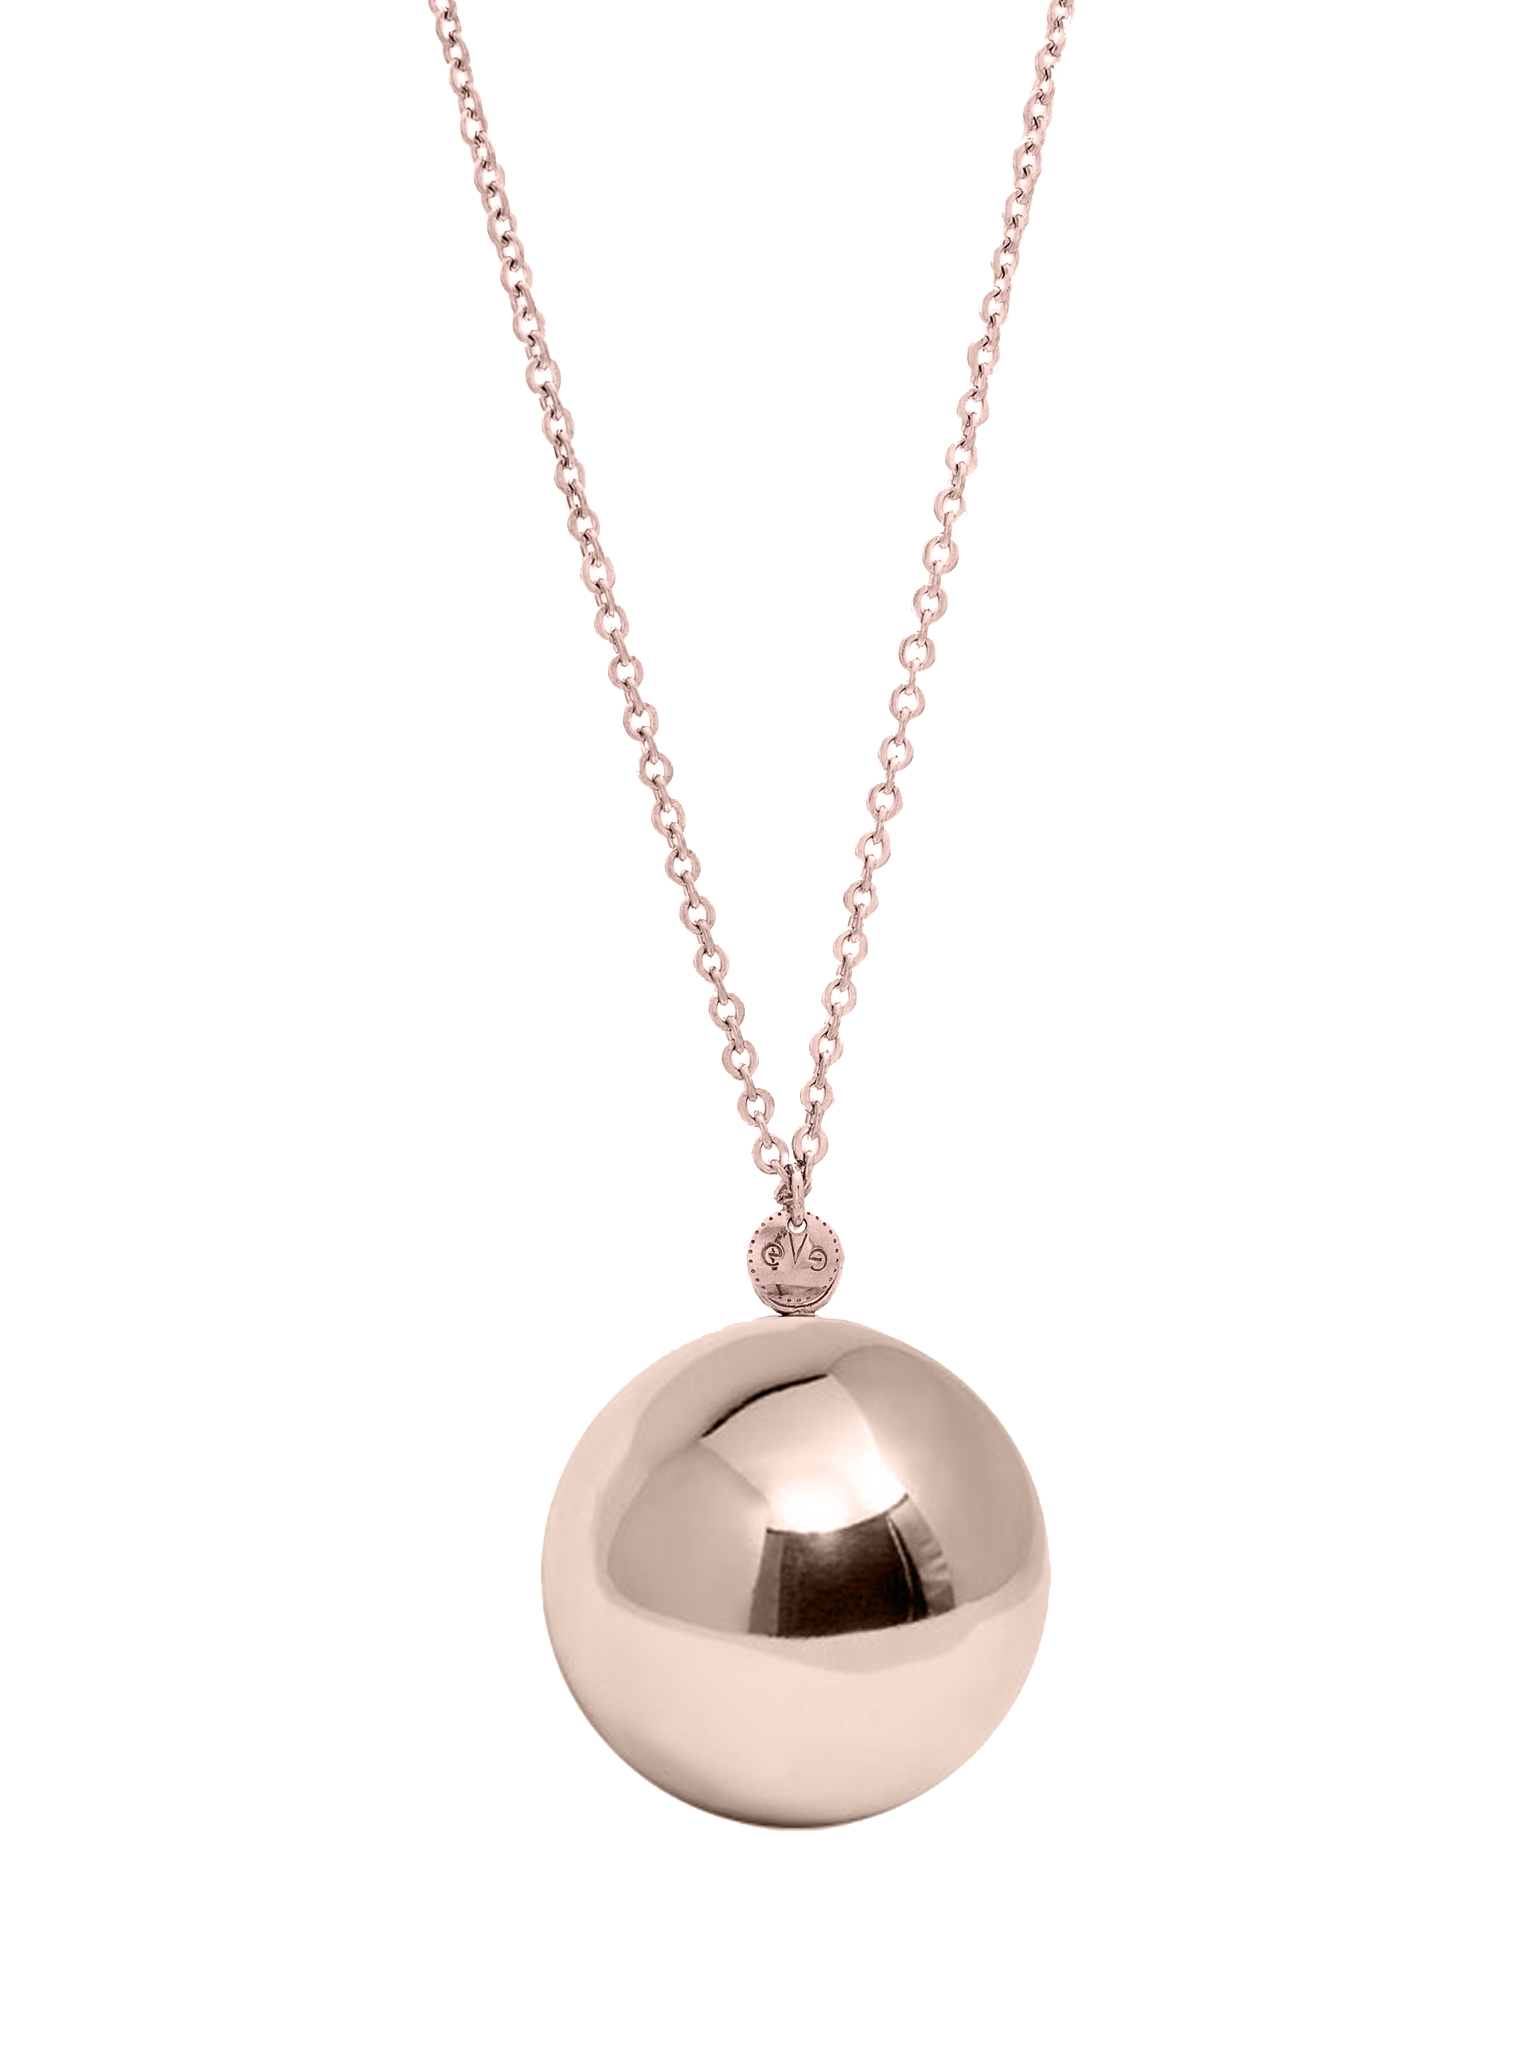 Rosé Ball necklace